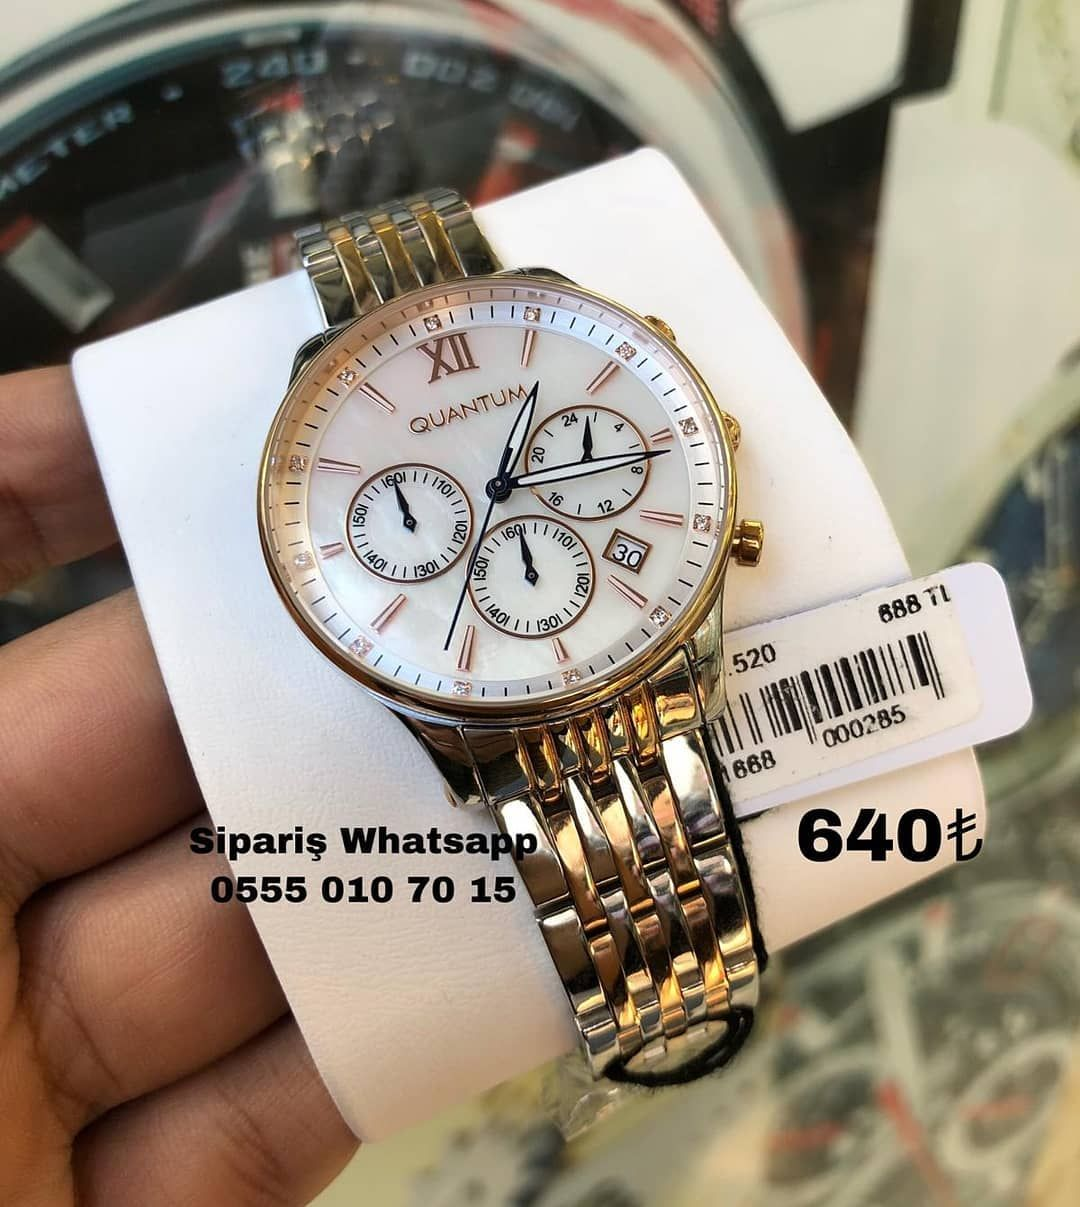 Aytintili Bilgi Ve Siparis Icin Whatsapptan Yazabilirsiniz Whatsapp Destek 0555 010 70 15 In 2020 Rolex Watches Michael Kors Watch Watches